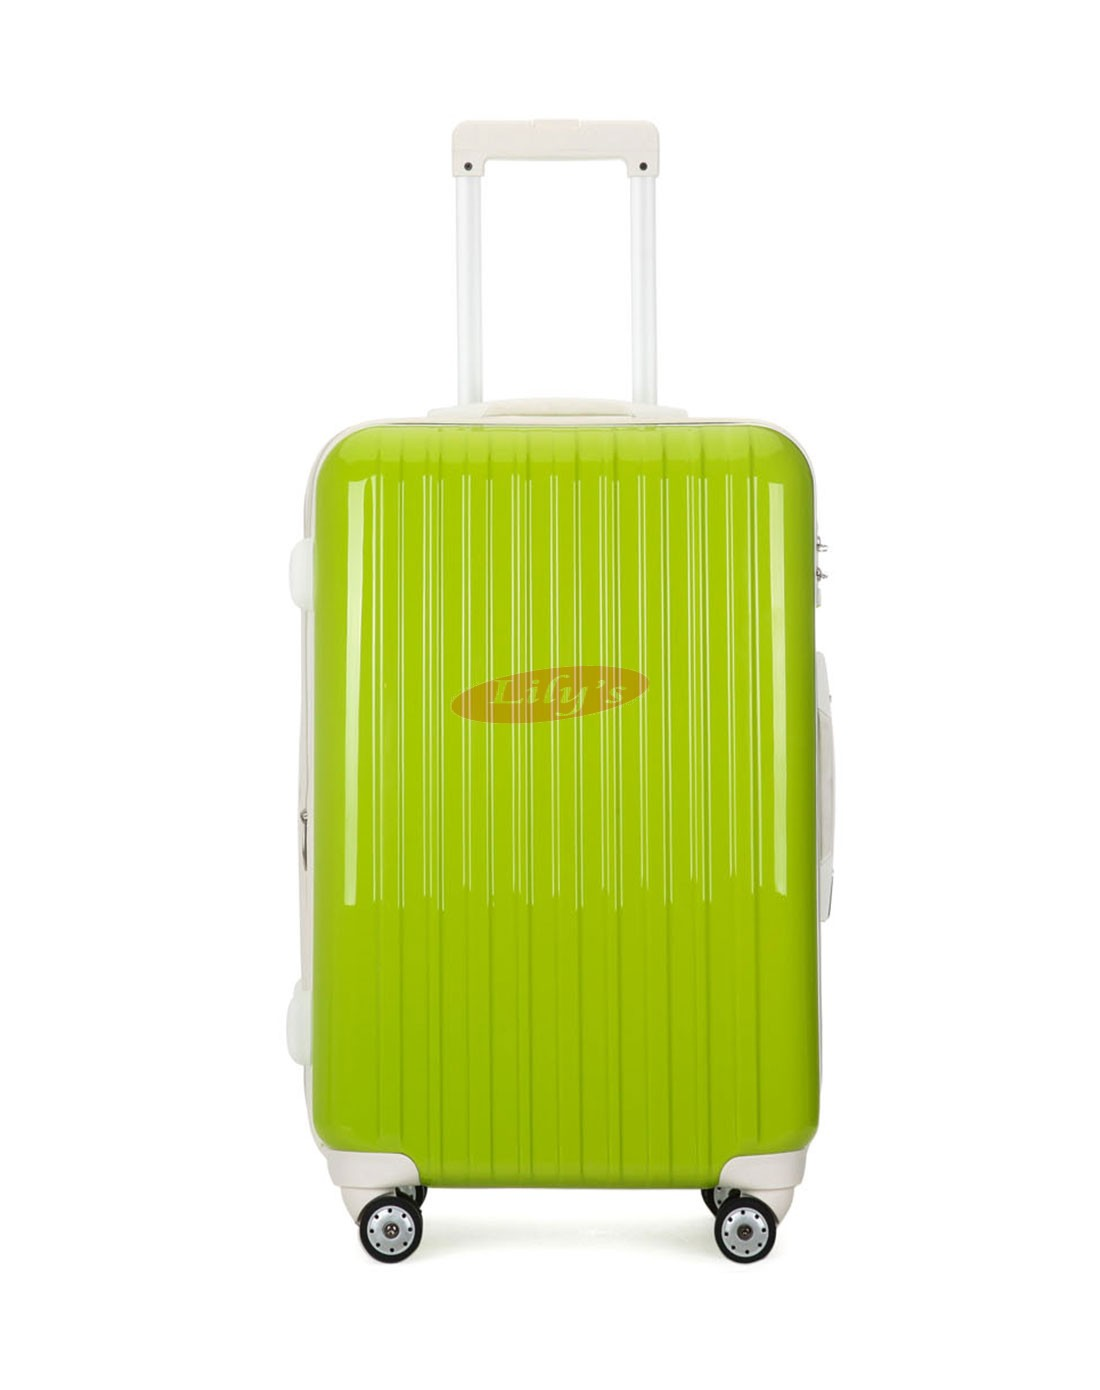 "AIRCROSS 3PC Set Luggage A55 Light Green Hard Case Expandable Trolley Luggage - 20""24""&26"""